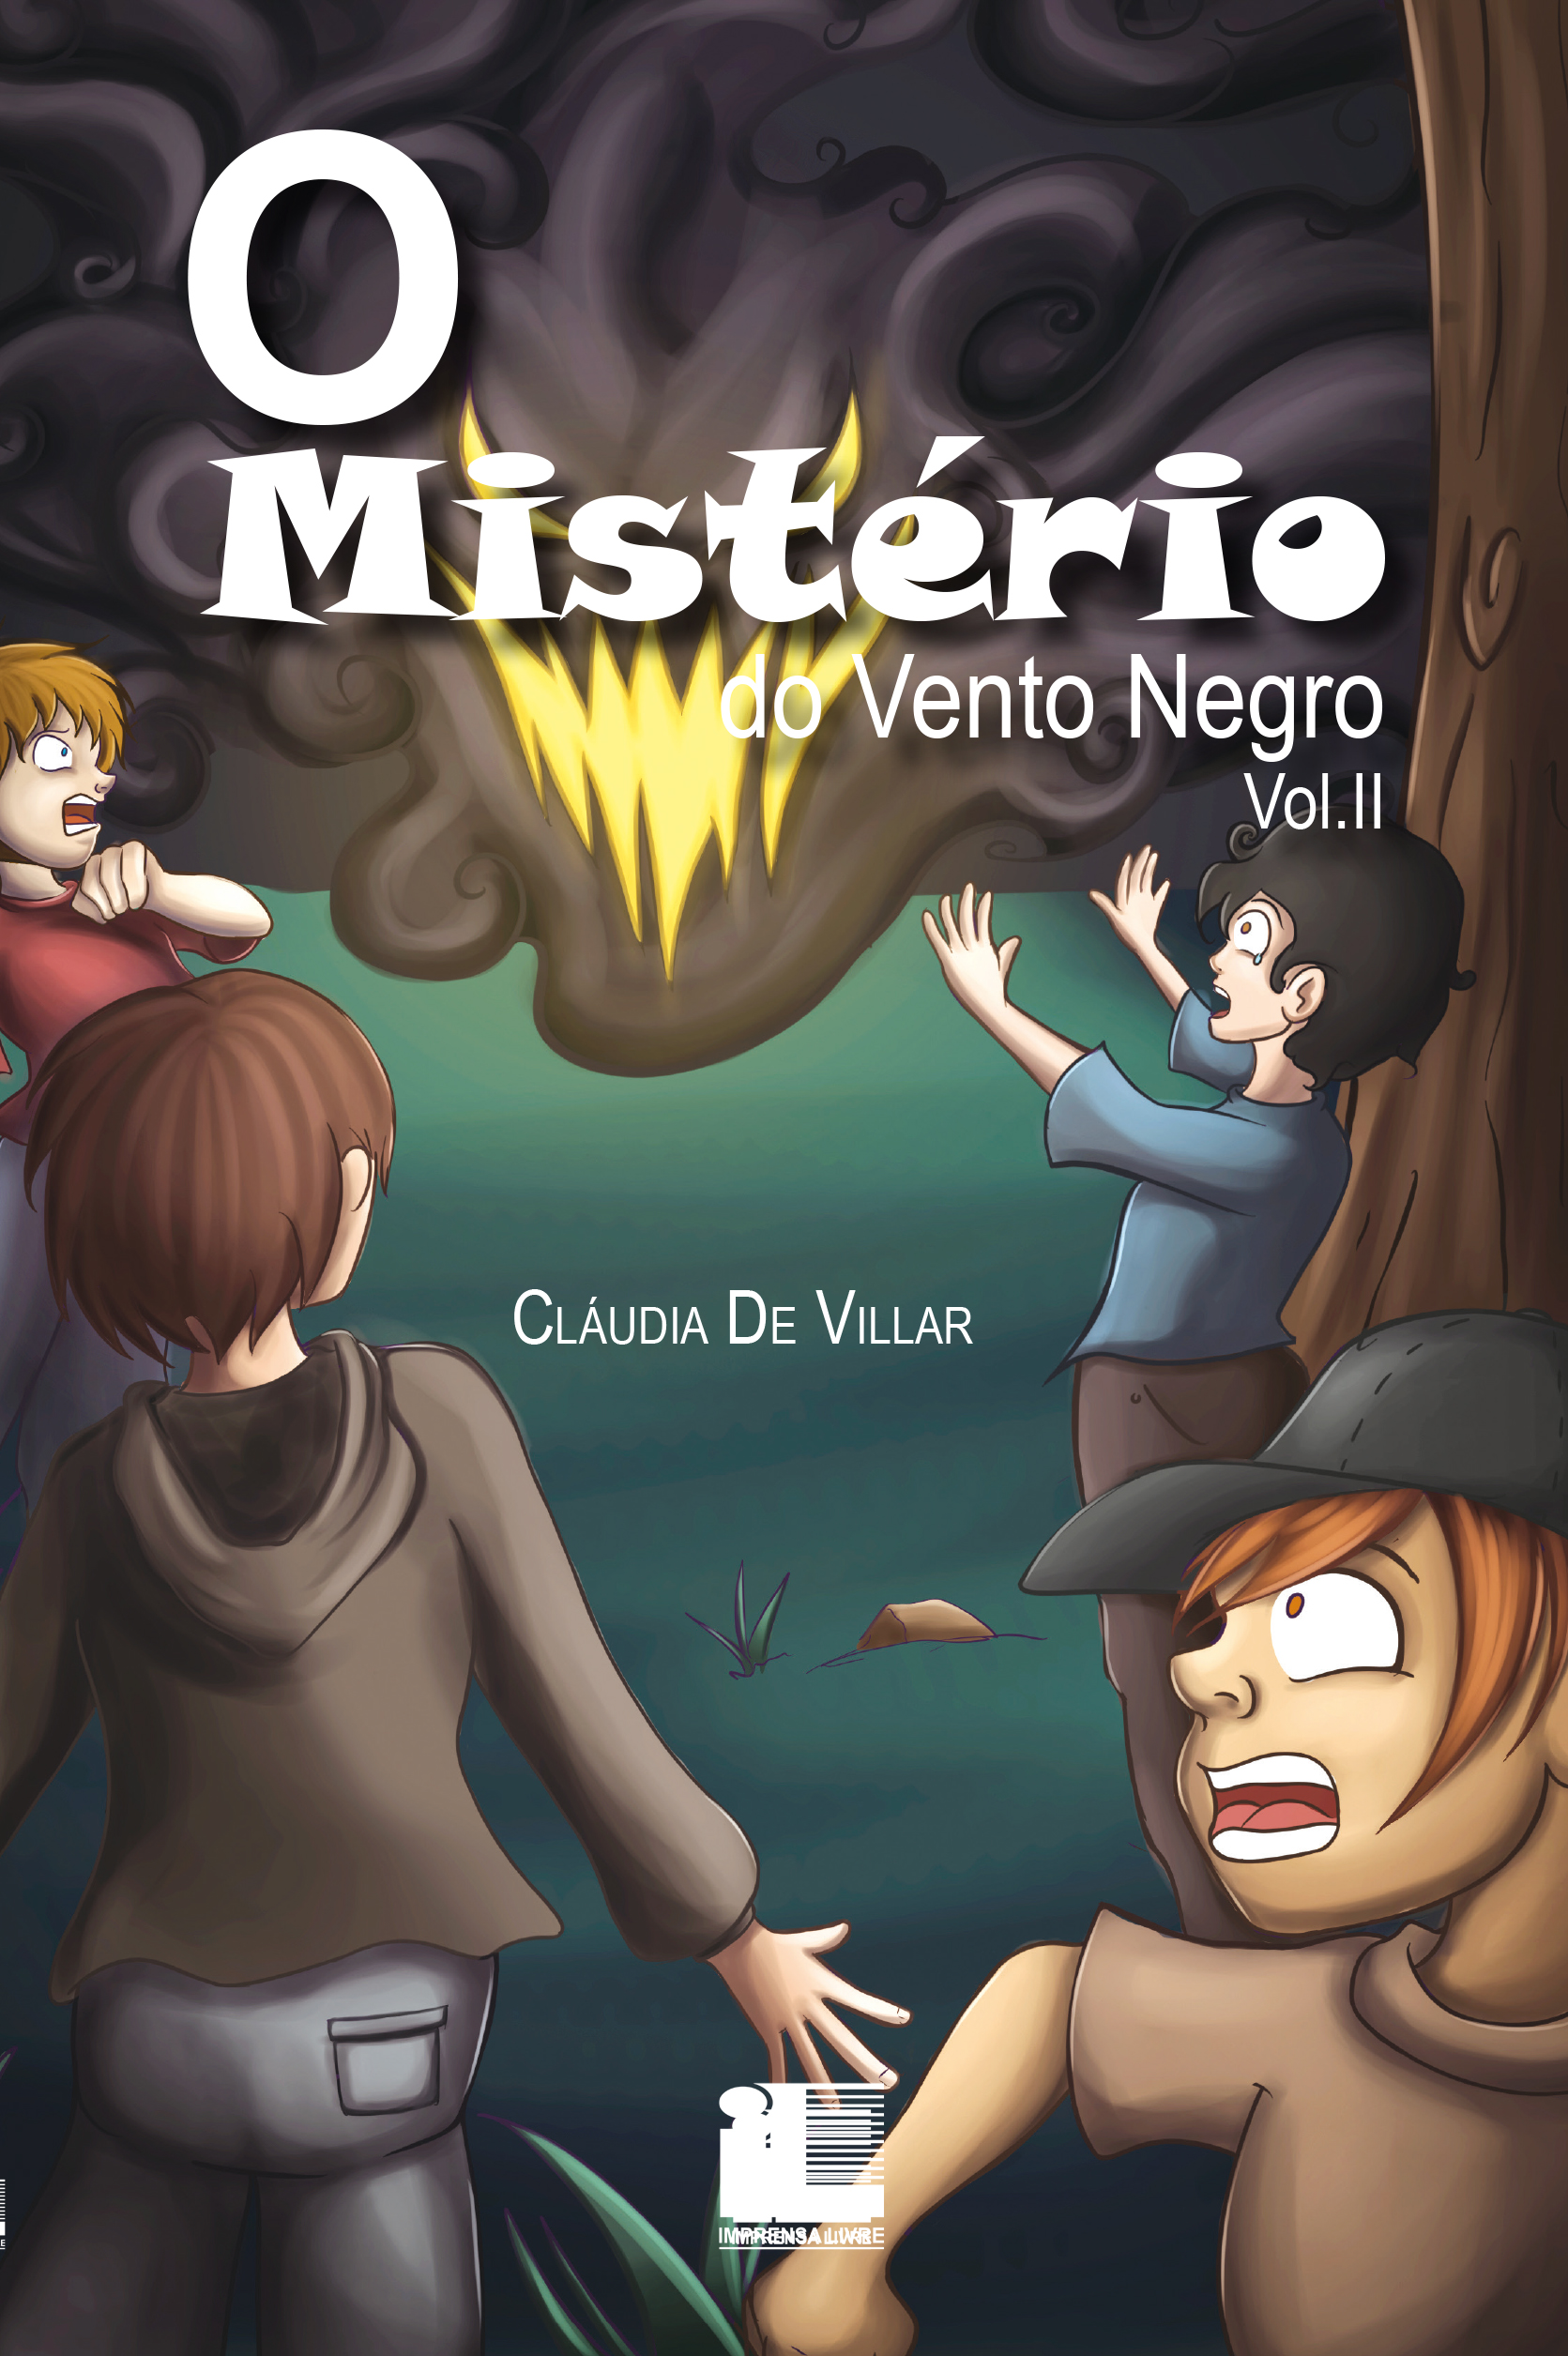 O Mistério do Vento Negro, vol. II